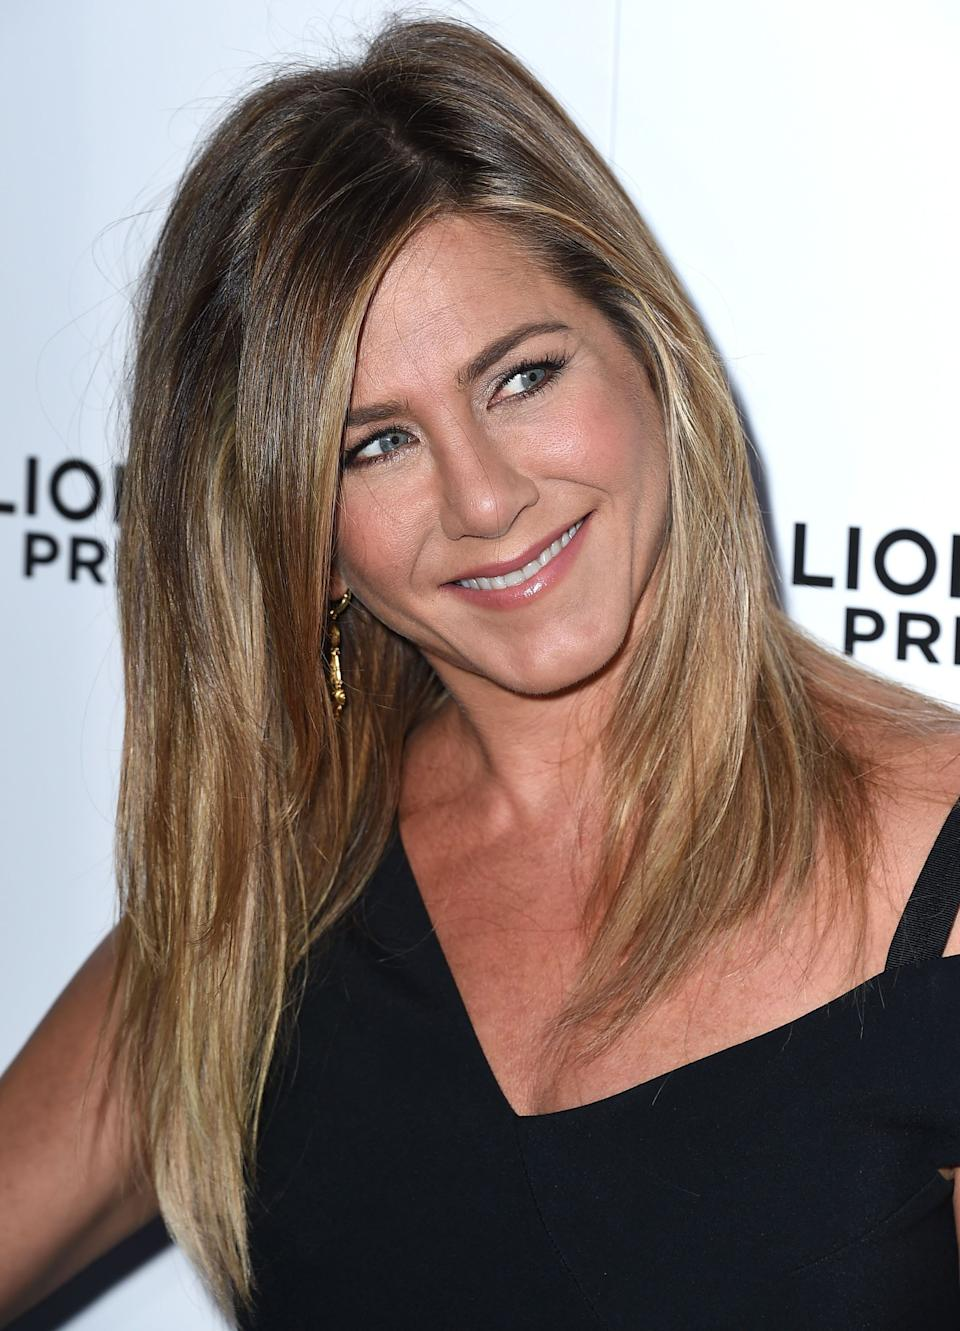 And speaking of how to flawlessly handle a break-up... The media coverage surrounding Jennifer Aniston for the <i>decade</i> after her split from Brad Pitt, was often unnecessary, cruel and steeped in sexism. <br /><br />Through it all, though, she kept her head high, continued working and, more importantly, smiling away, despite what was said about her in the press. <br /><br />Now she's one of the highest-paid actresses <i>in the world</i>, and is married to her long-time partner, Justin Theroux.